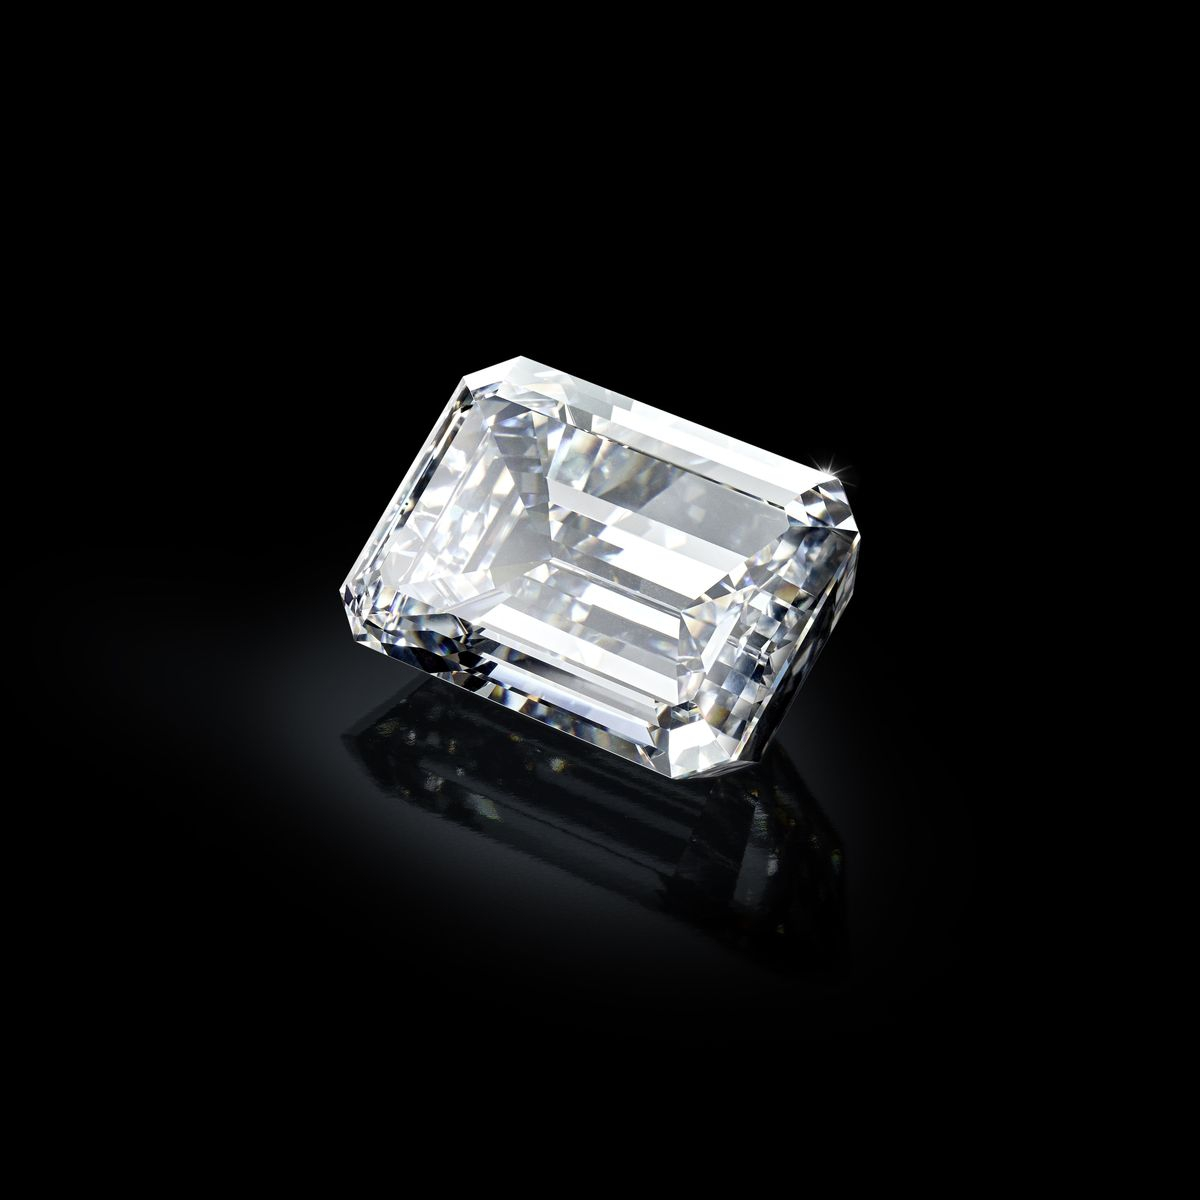 stone, 163ct, D, Flawless